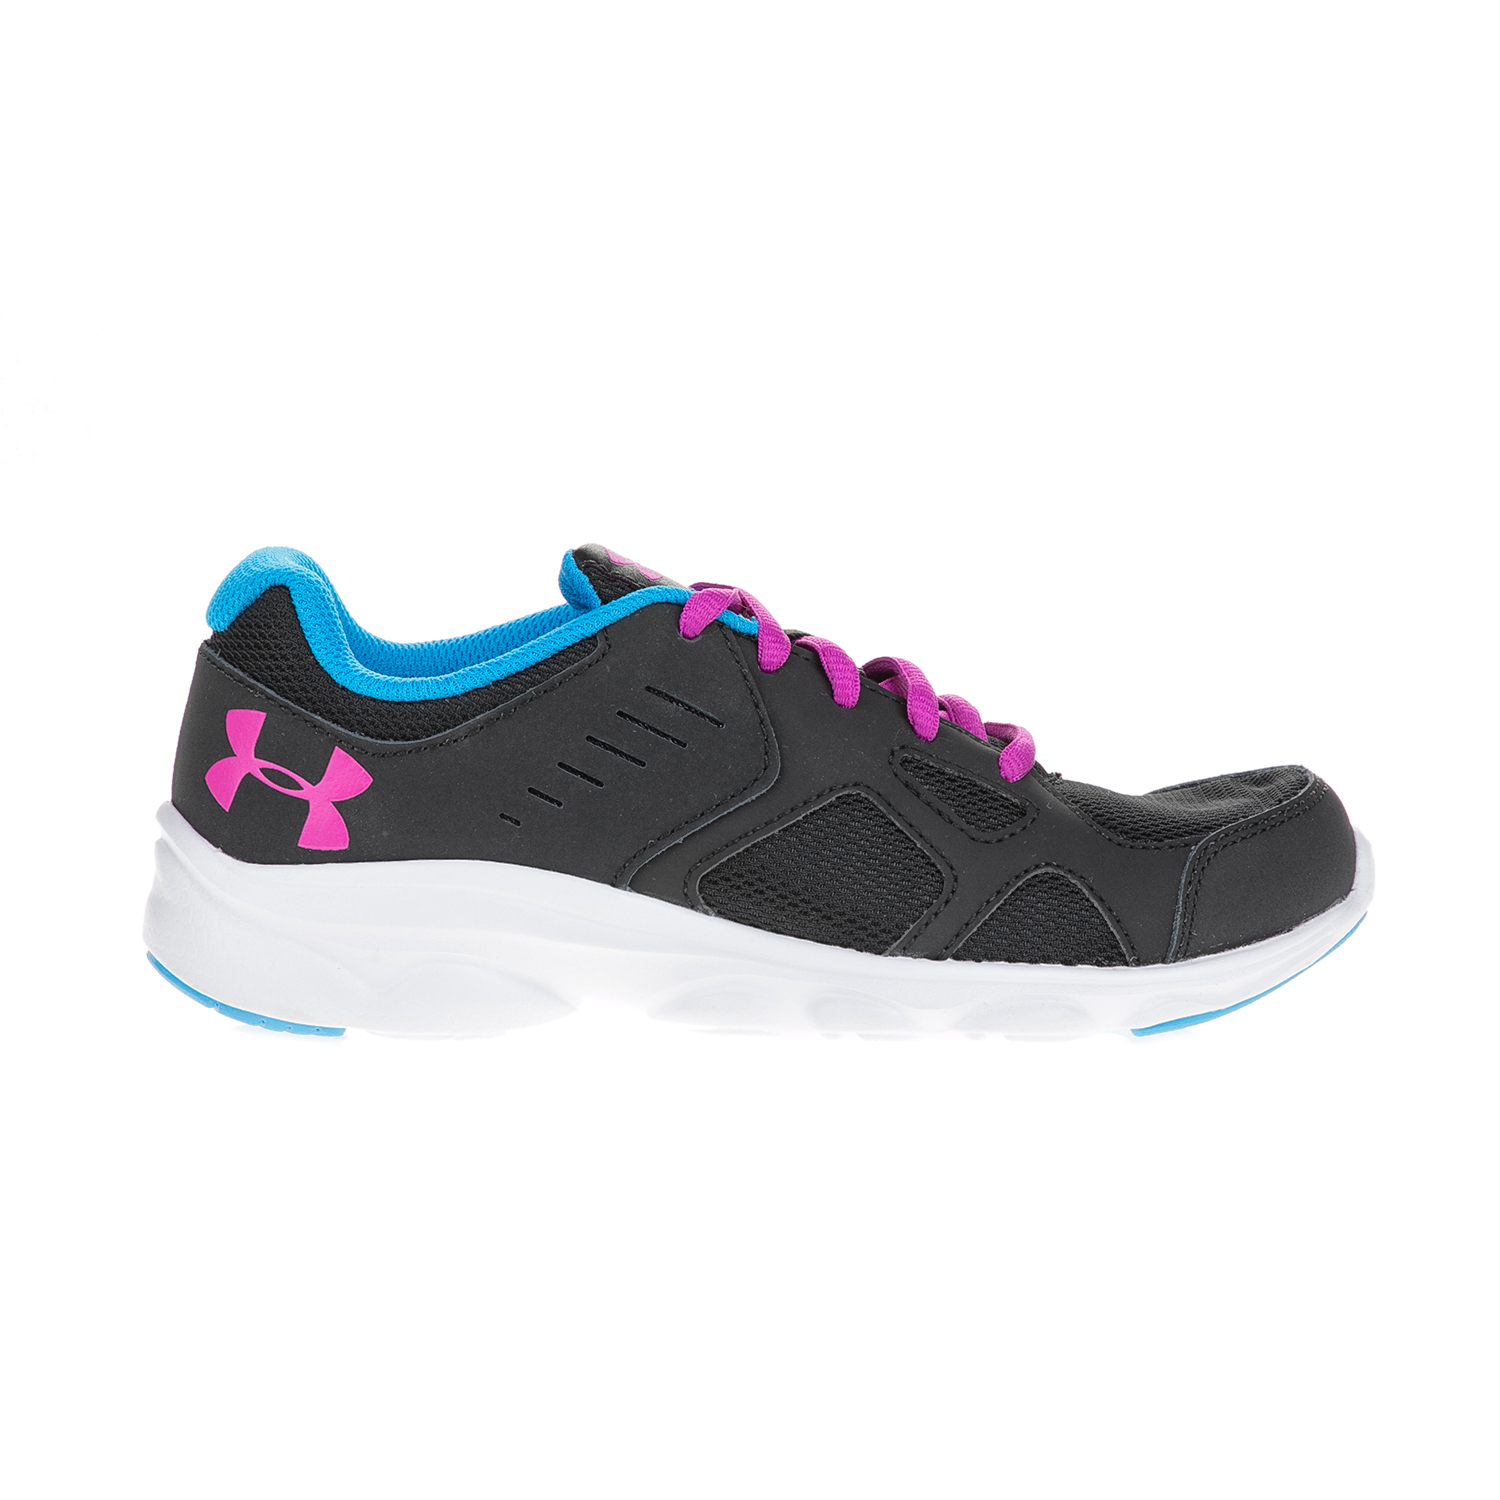 UNDER ARMOUR – Κοριτσίστικα αθλητικά παπούτσια UNDER ARMOUR GGS PACE RN μαύρα